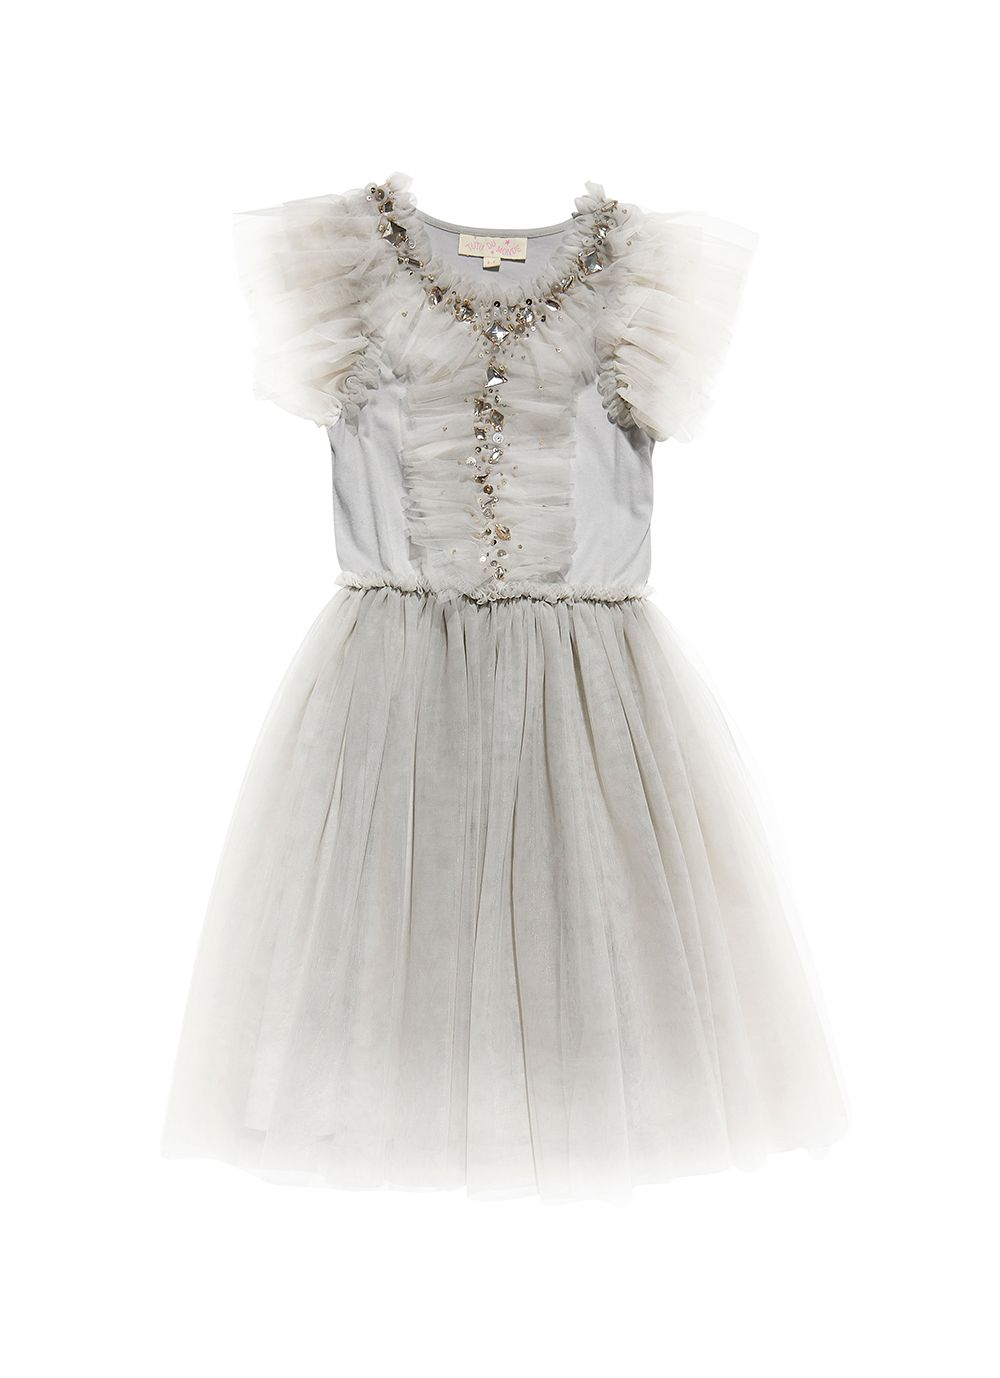 e6903f1daa7 Another Dimension Tutu Dress - Silver Ballerina Tutu